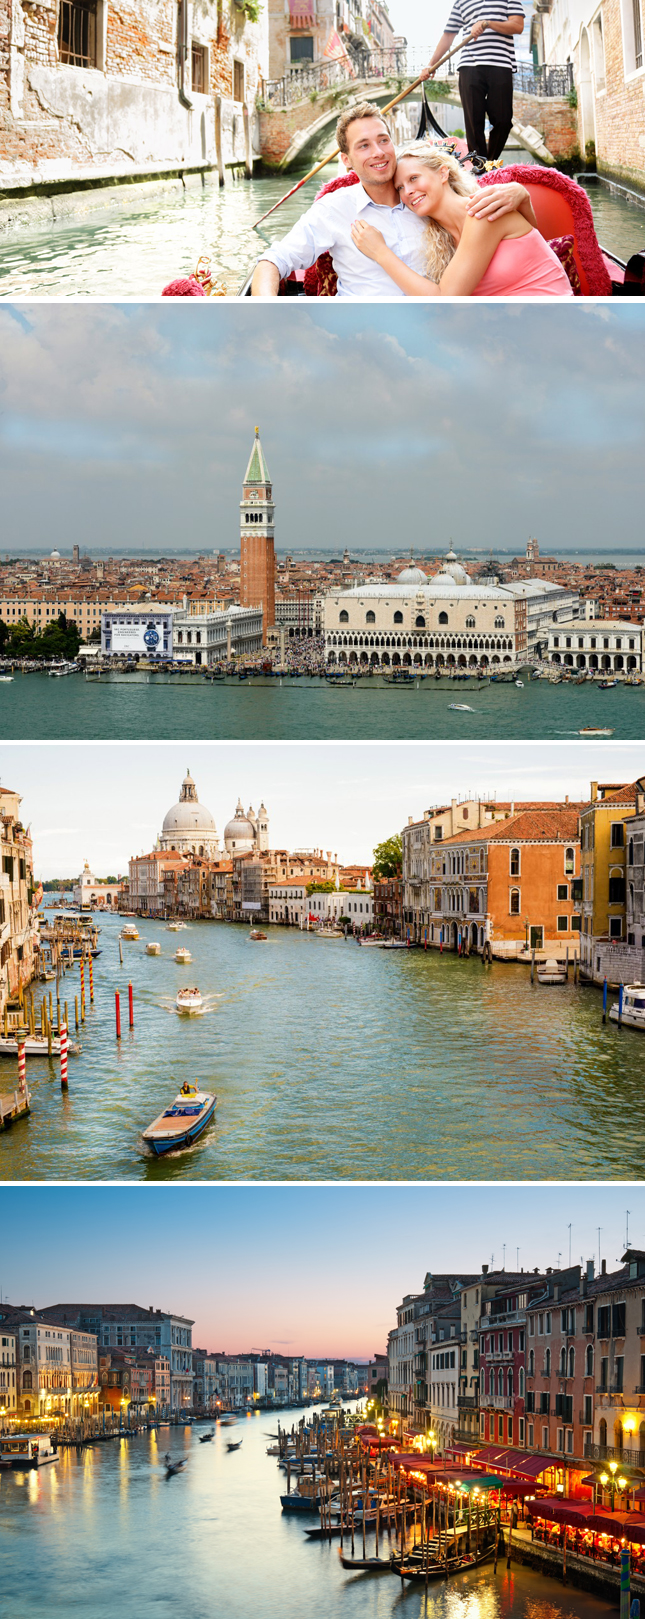 Luxury travel, Romantic Travel in Italy, Venice, Valentine's